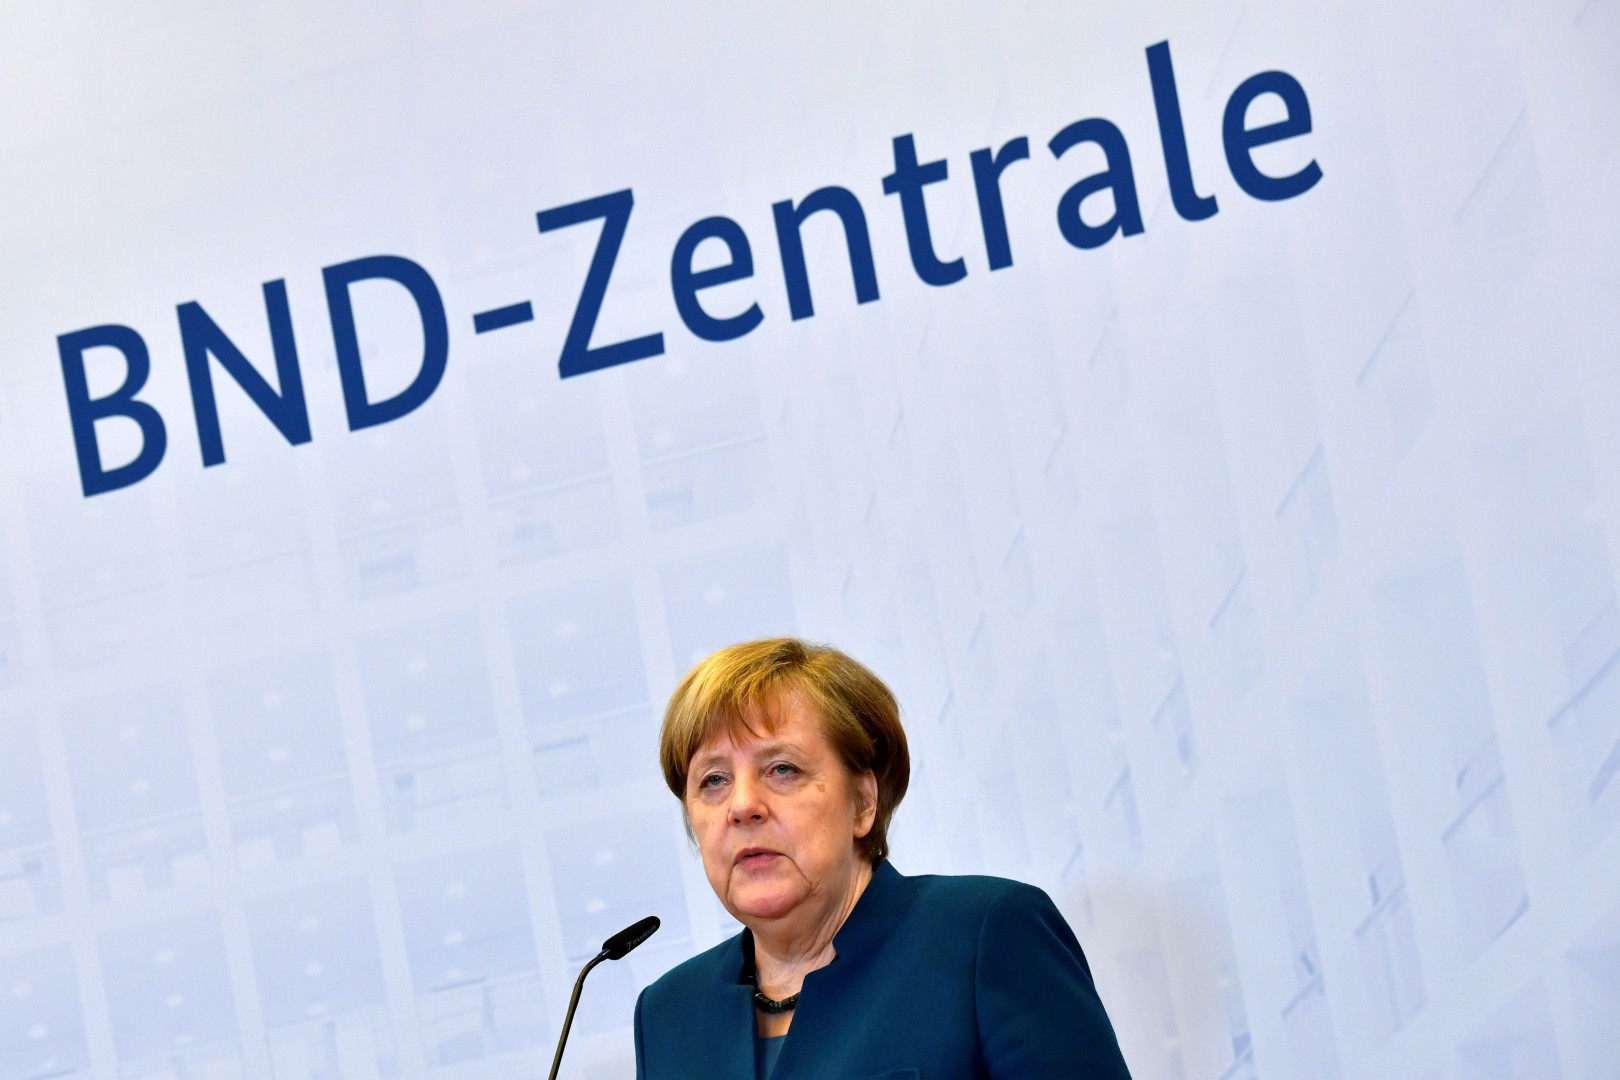 German Chancellor Angela Merkel gives a speech during the official opening ceremony of the Federal Intelligence Service (BND) building on February 8, 2019 in Berlin. (Photo by John MACDOUGALL / AFP)